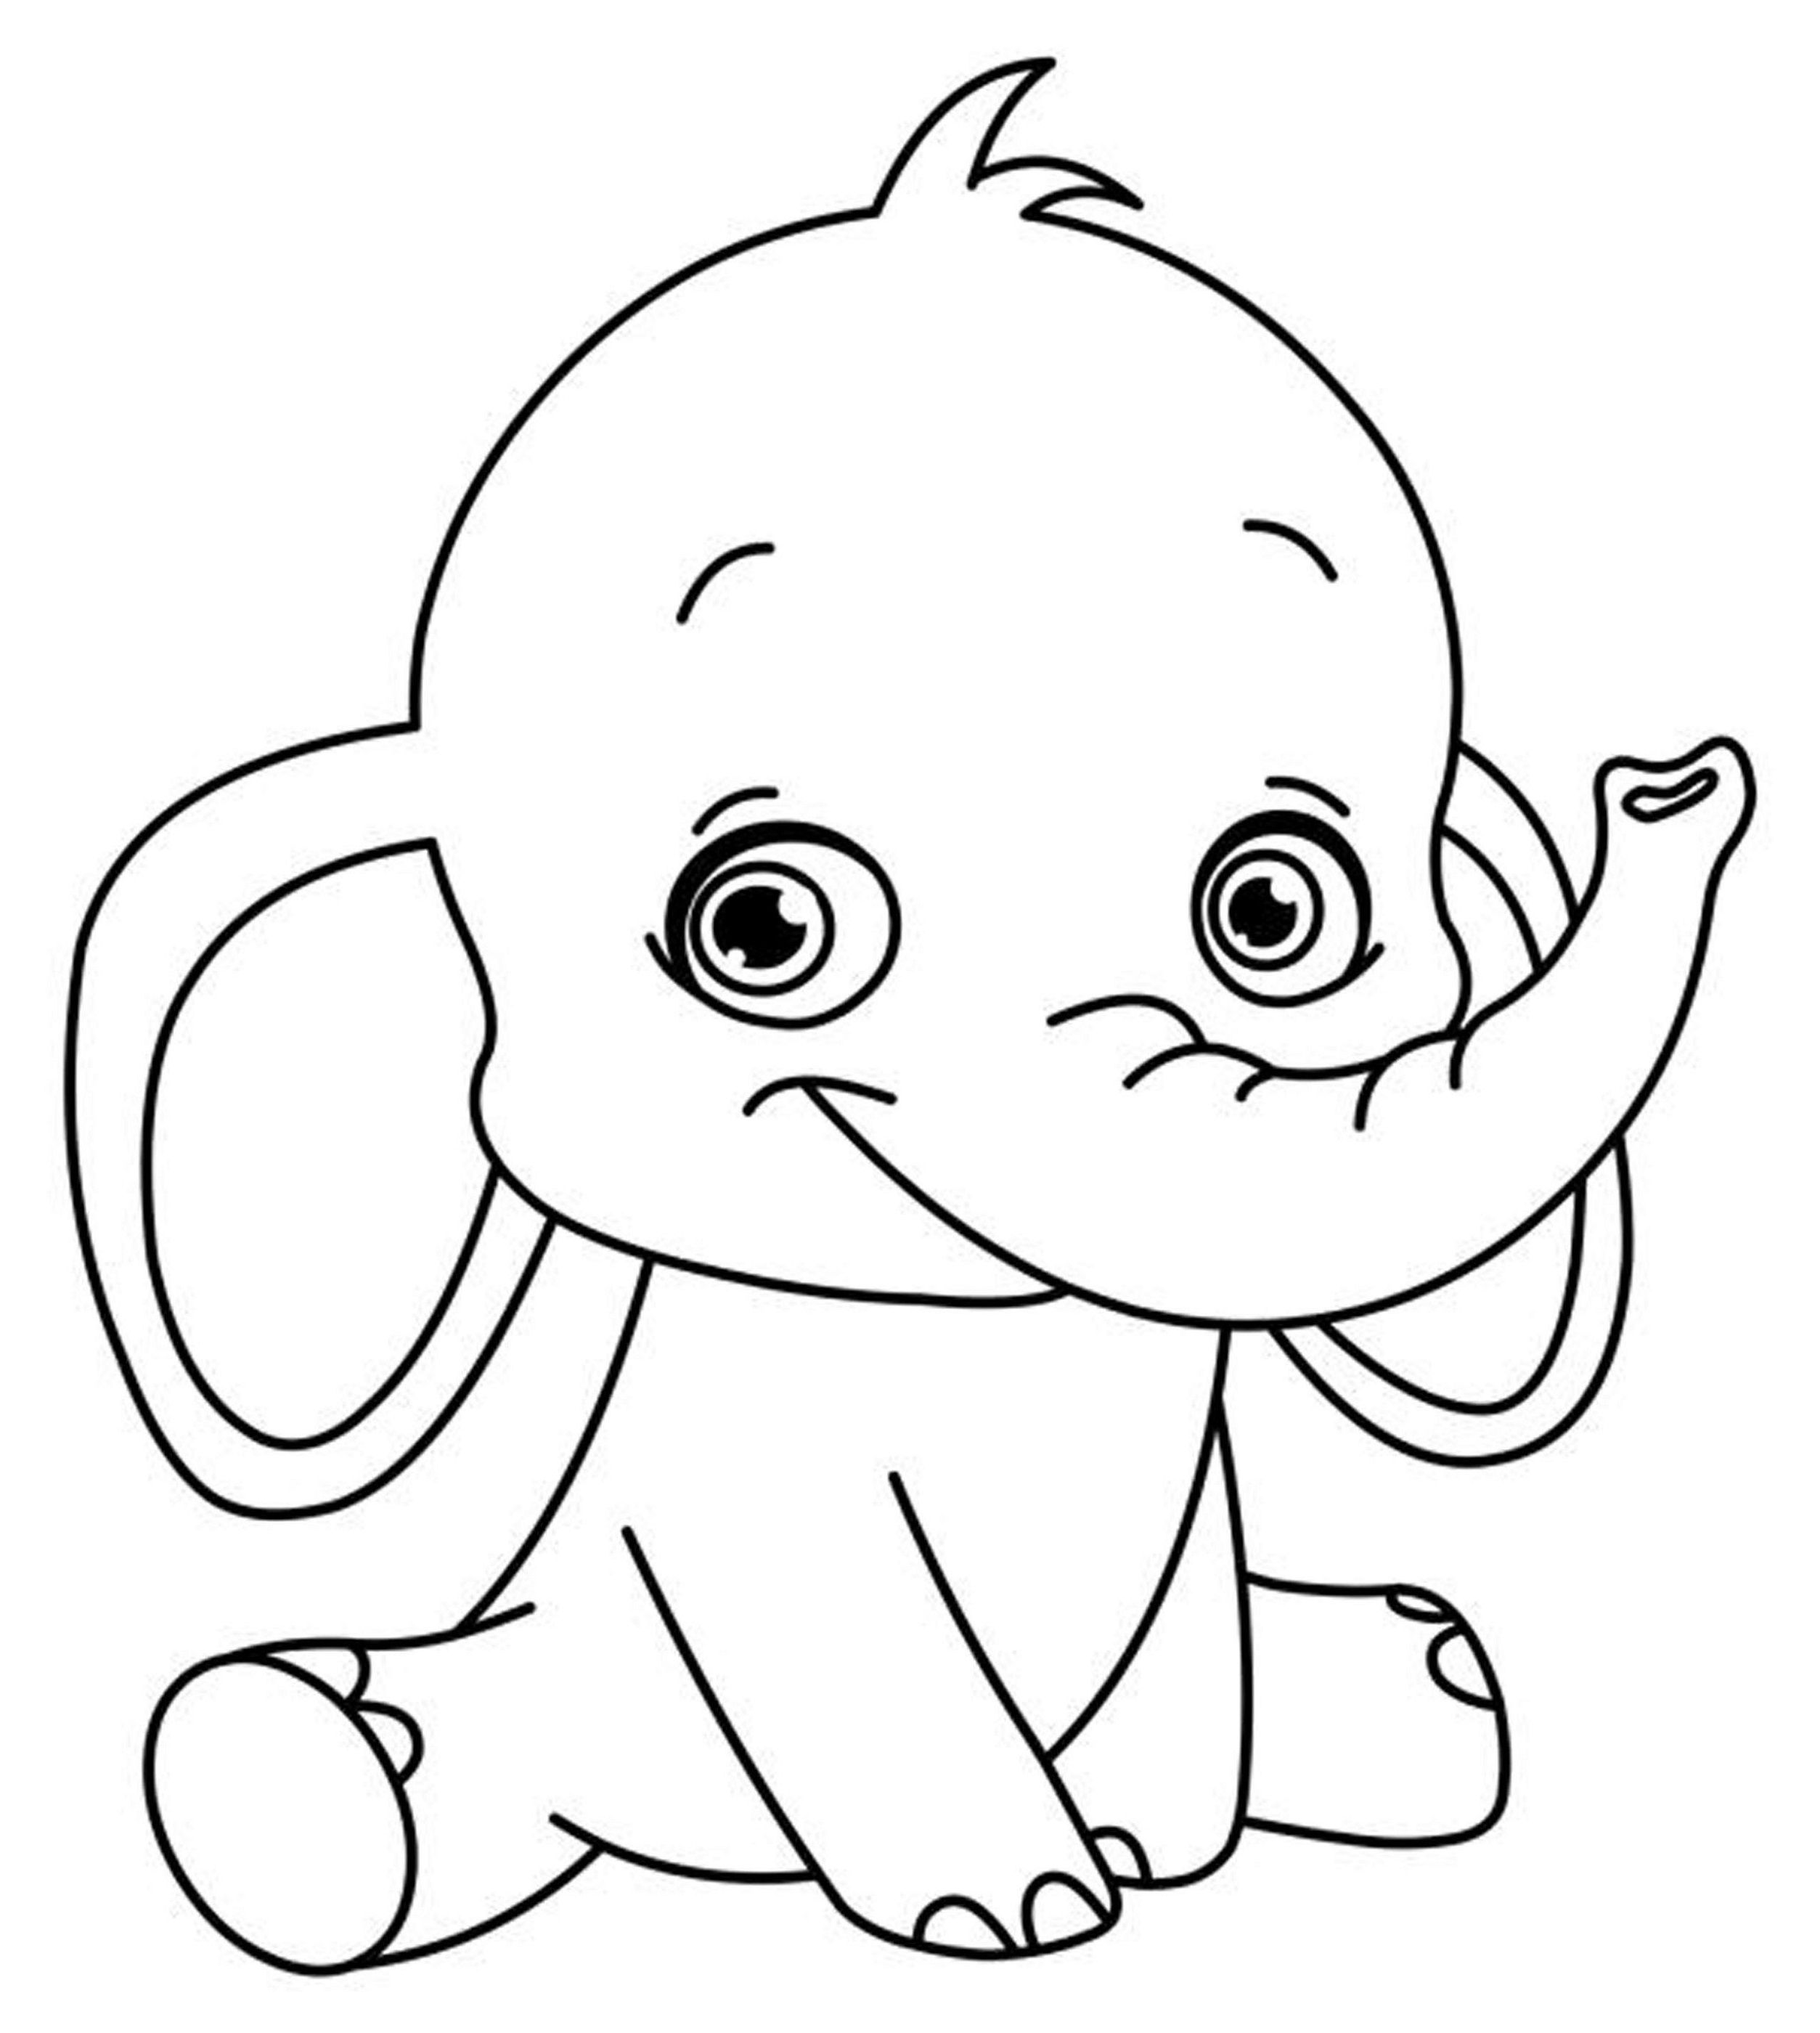 Easy Printable Coloring Pages Elephant Coloring Page Kids Printable Coloring Pages Easy Coloring Pages